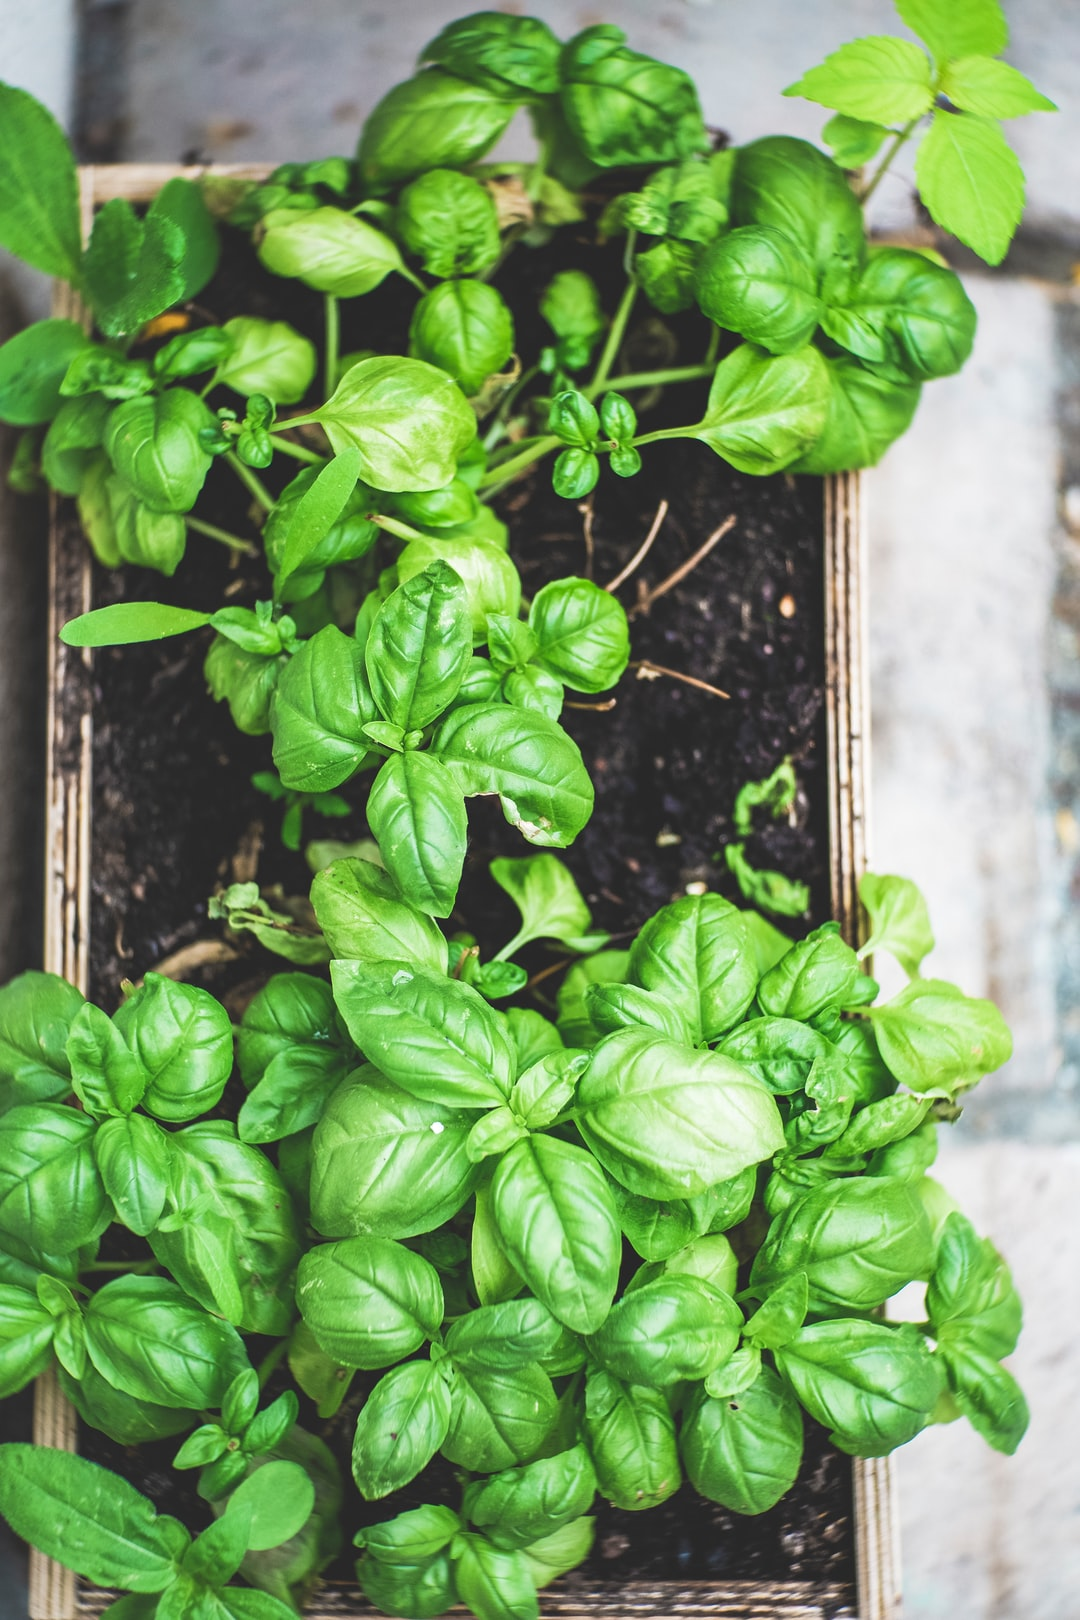 Urban Gardening – Homegrown Basil Herb. Made with Canon 5d Mark III and Meyer Optik Görlitz Primoplan 1.9 / 75mm